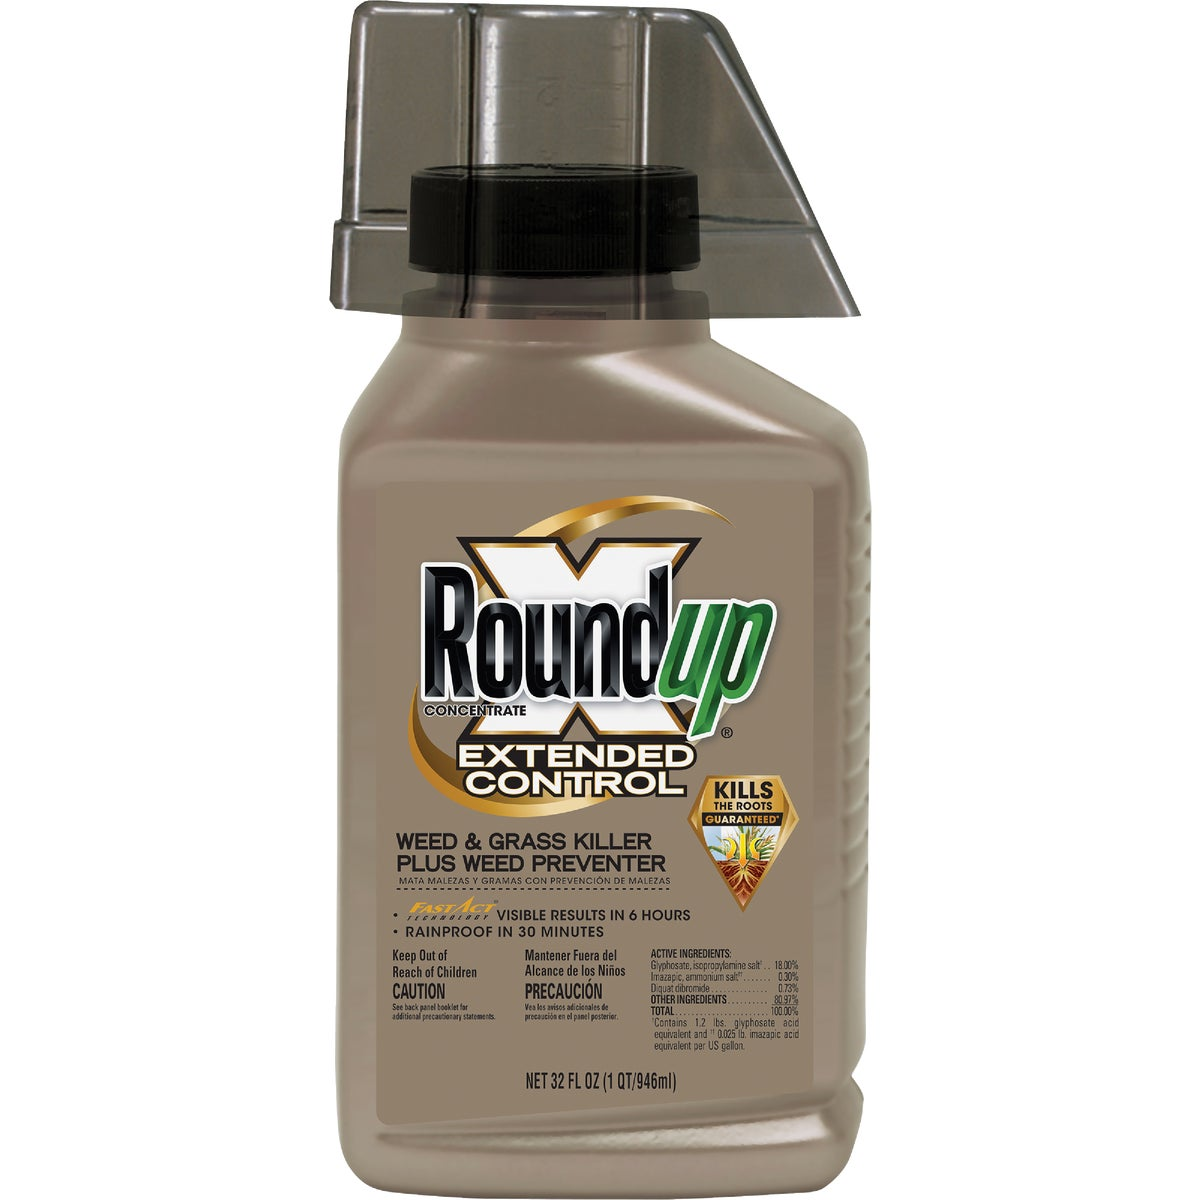 32OZ CONC EXTEND ROUNDUP